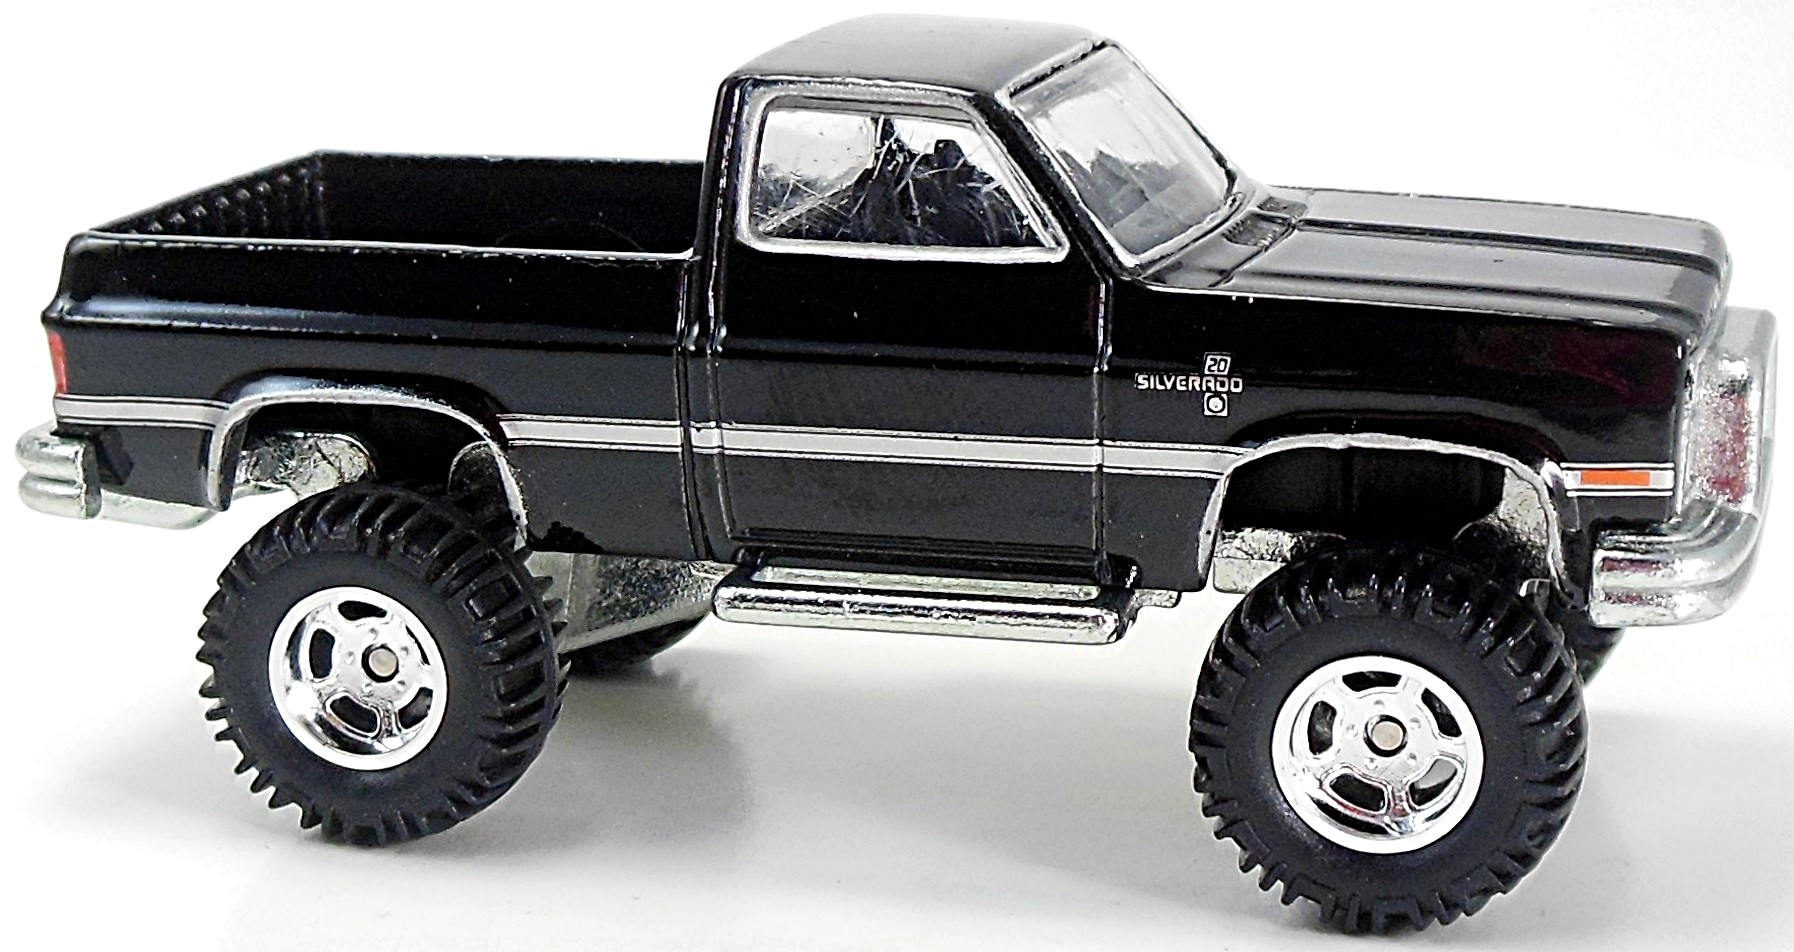 83 Chevy Silverado Lifted 79mm 2012 Hot Wheels Newsletter White